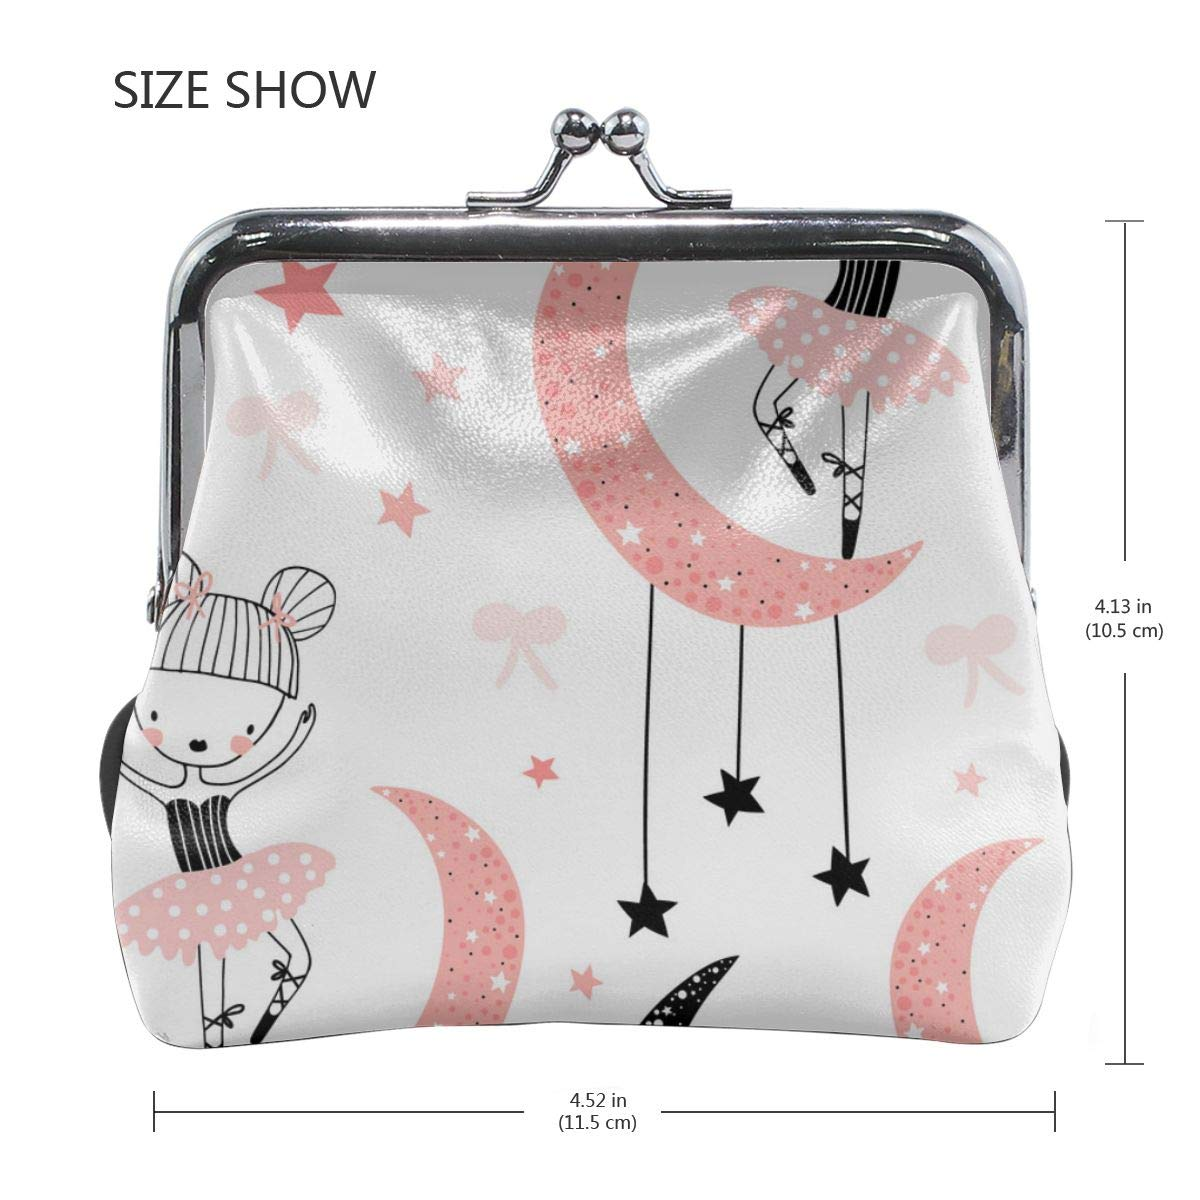 Personality Metal Lock Purse Architd Customized Cute Retro Coin Purse Girl Kiss And Buckle Change Purse Ladys HandbagCute Little Girl Dancing Ballet